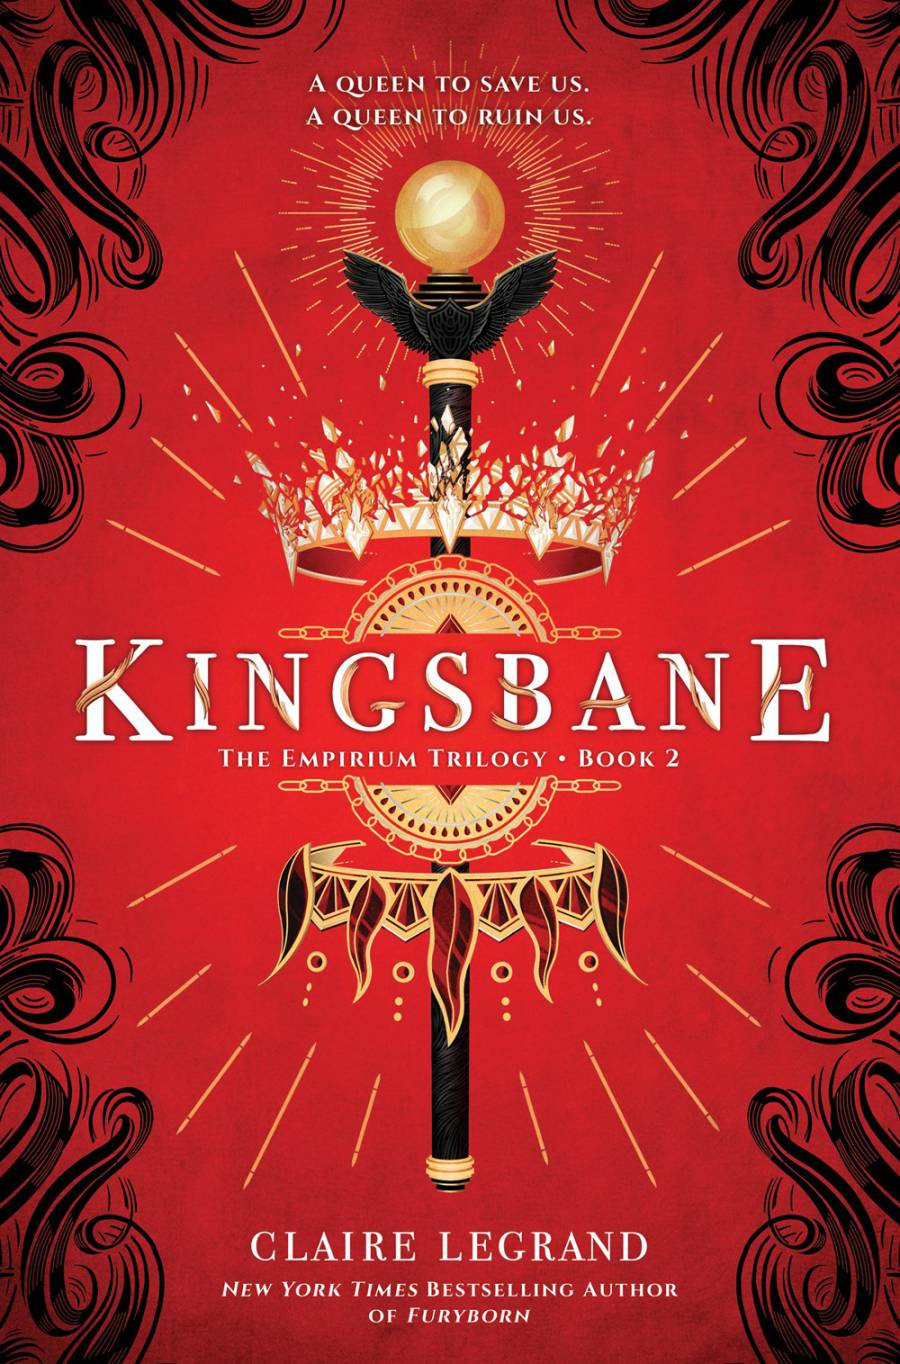 Kingsbane (Empirium #2) by Claire Legrand